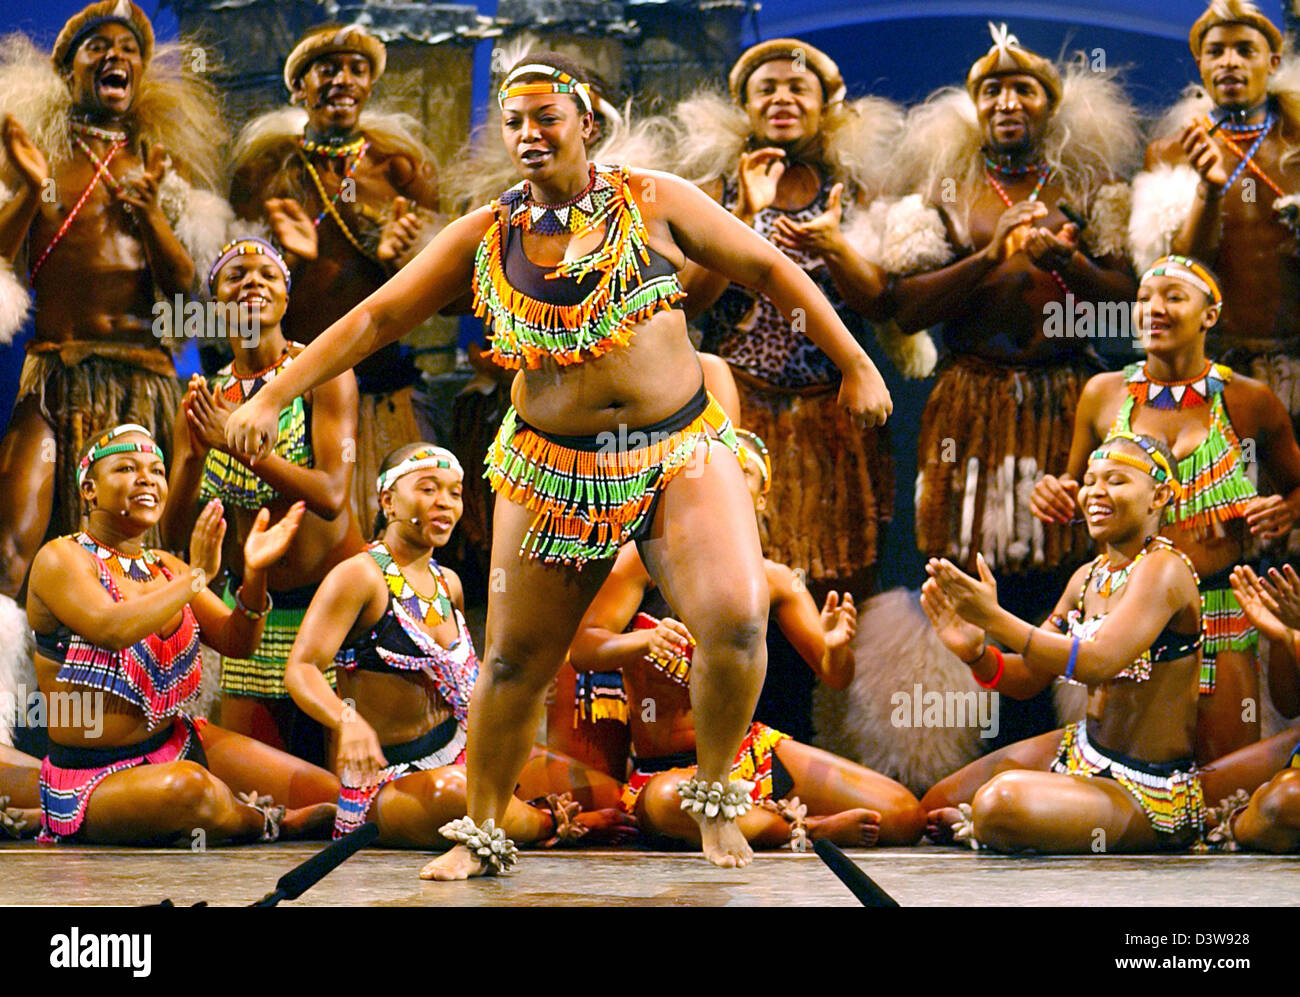 Dancers of the energetic South African show 'UMOJA - The